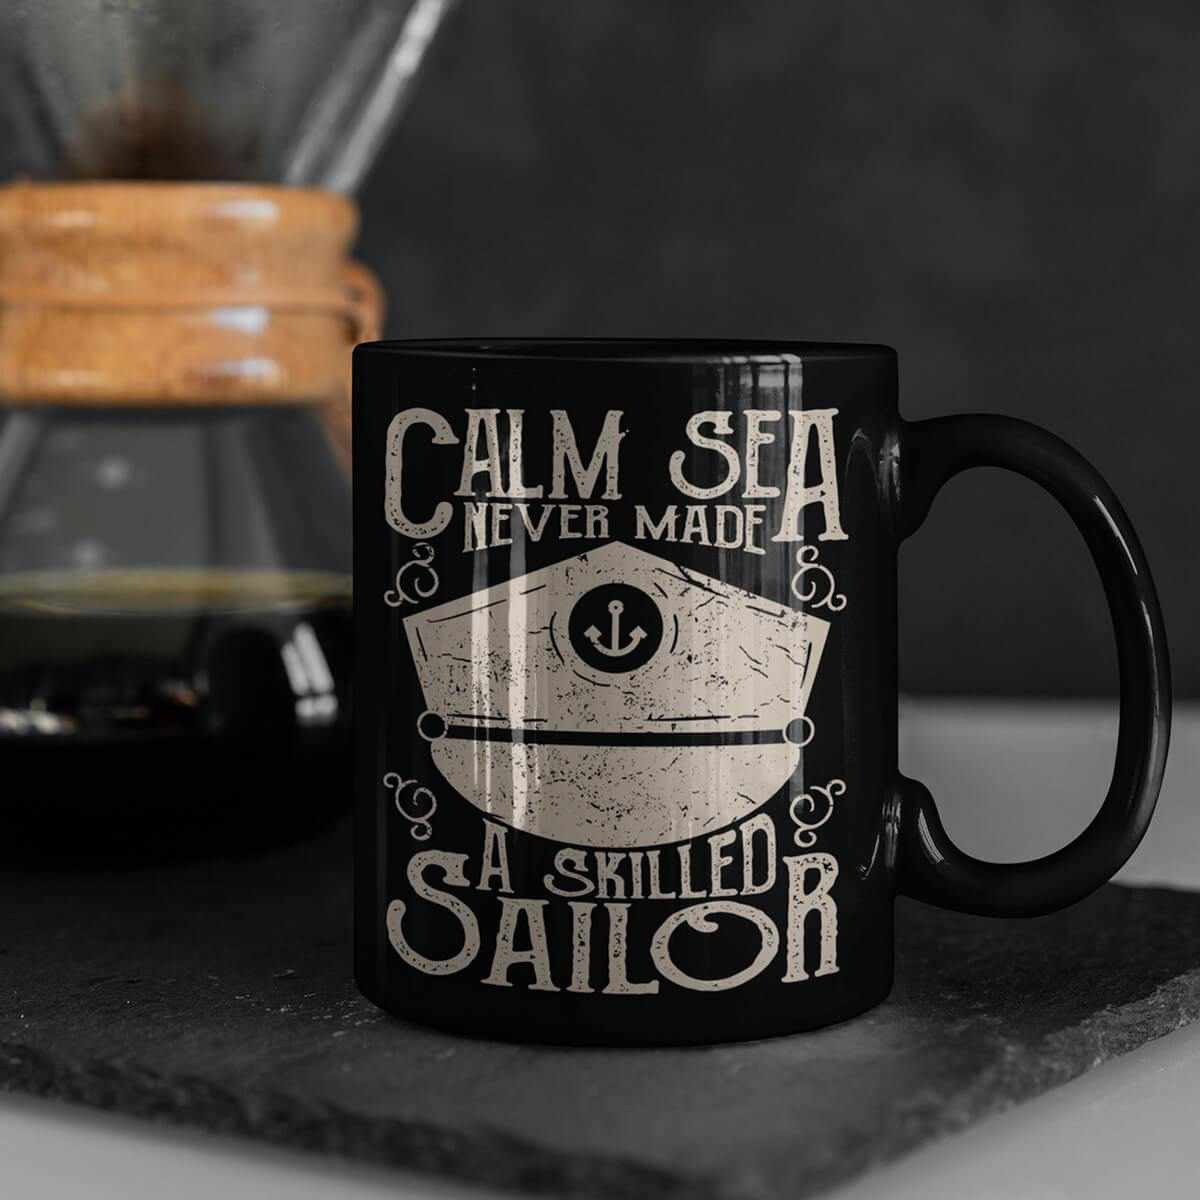 Calm sea never made a skilled sailor adventure mug, bottle, can holder. sailor gift, funny sea mug, 2-10 years old-Mug-Titanic shop-latte-mug-water-bottle-tumbler-can-holder-Titanic shop